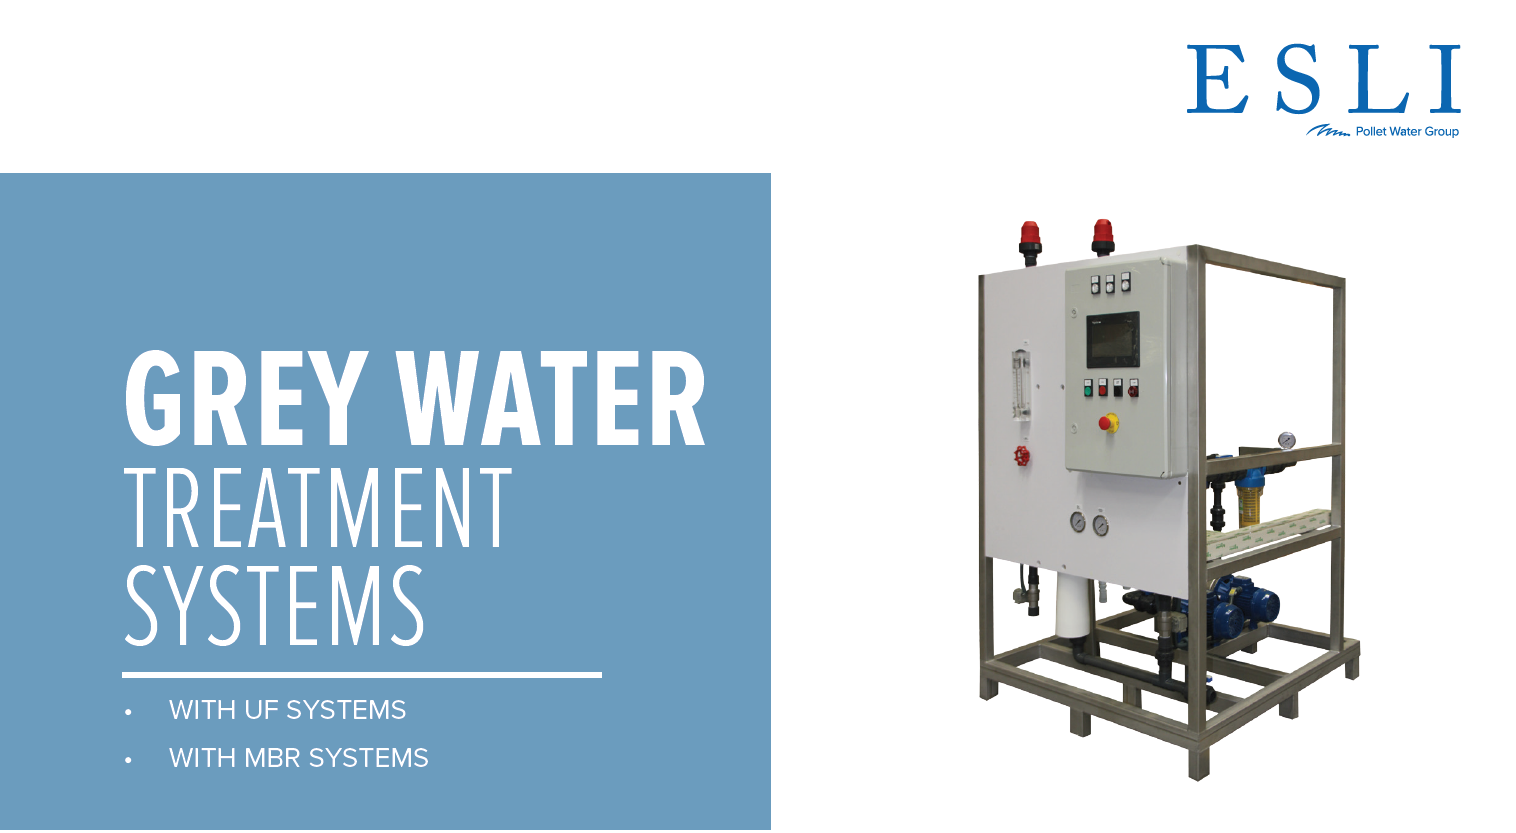 Grey water treatment systems